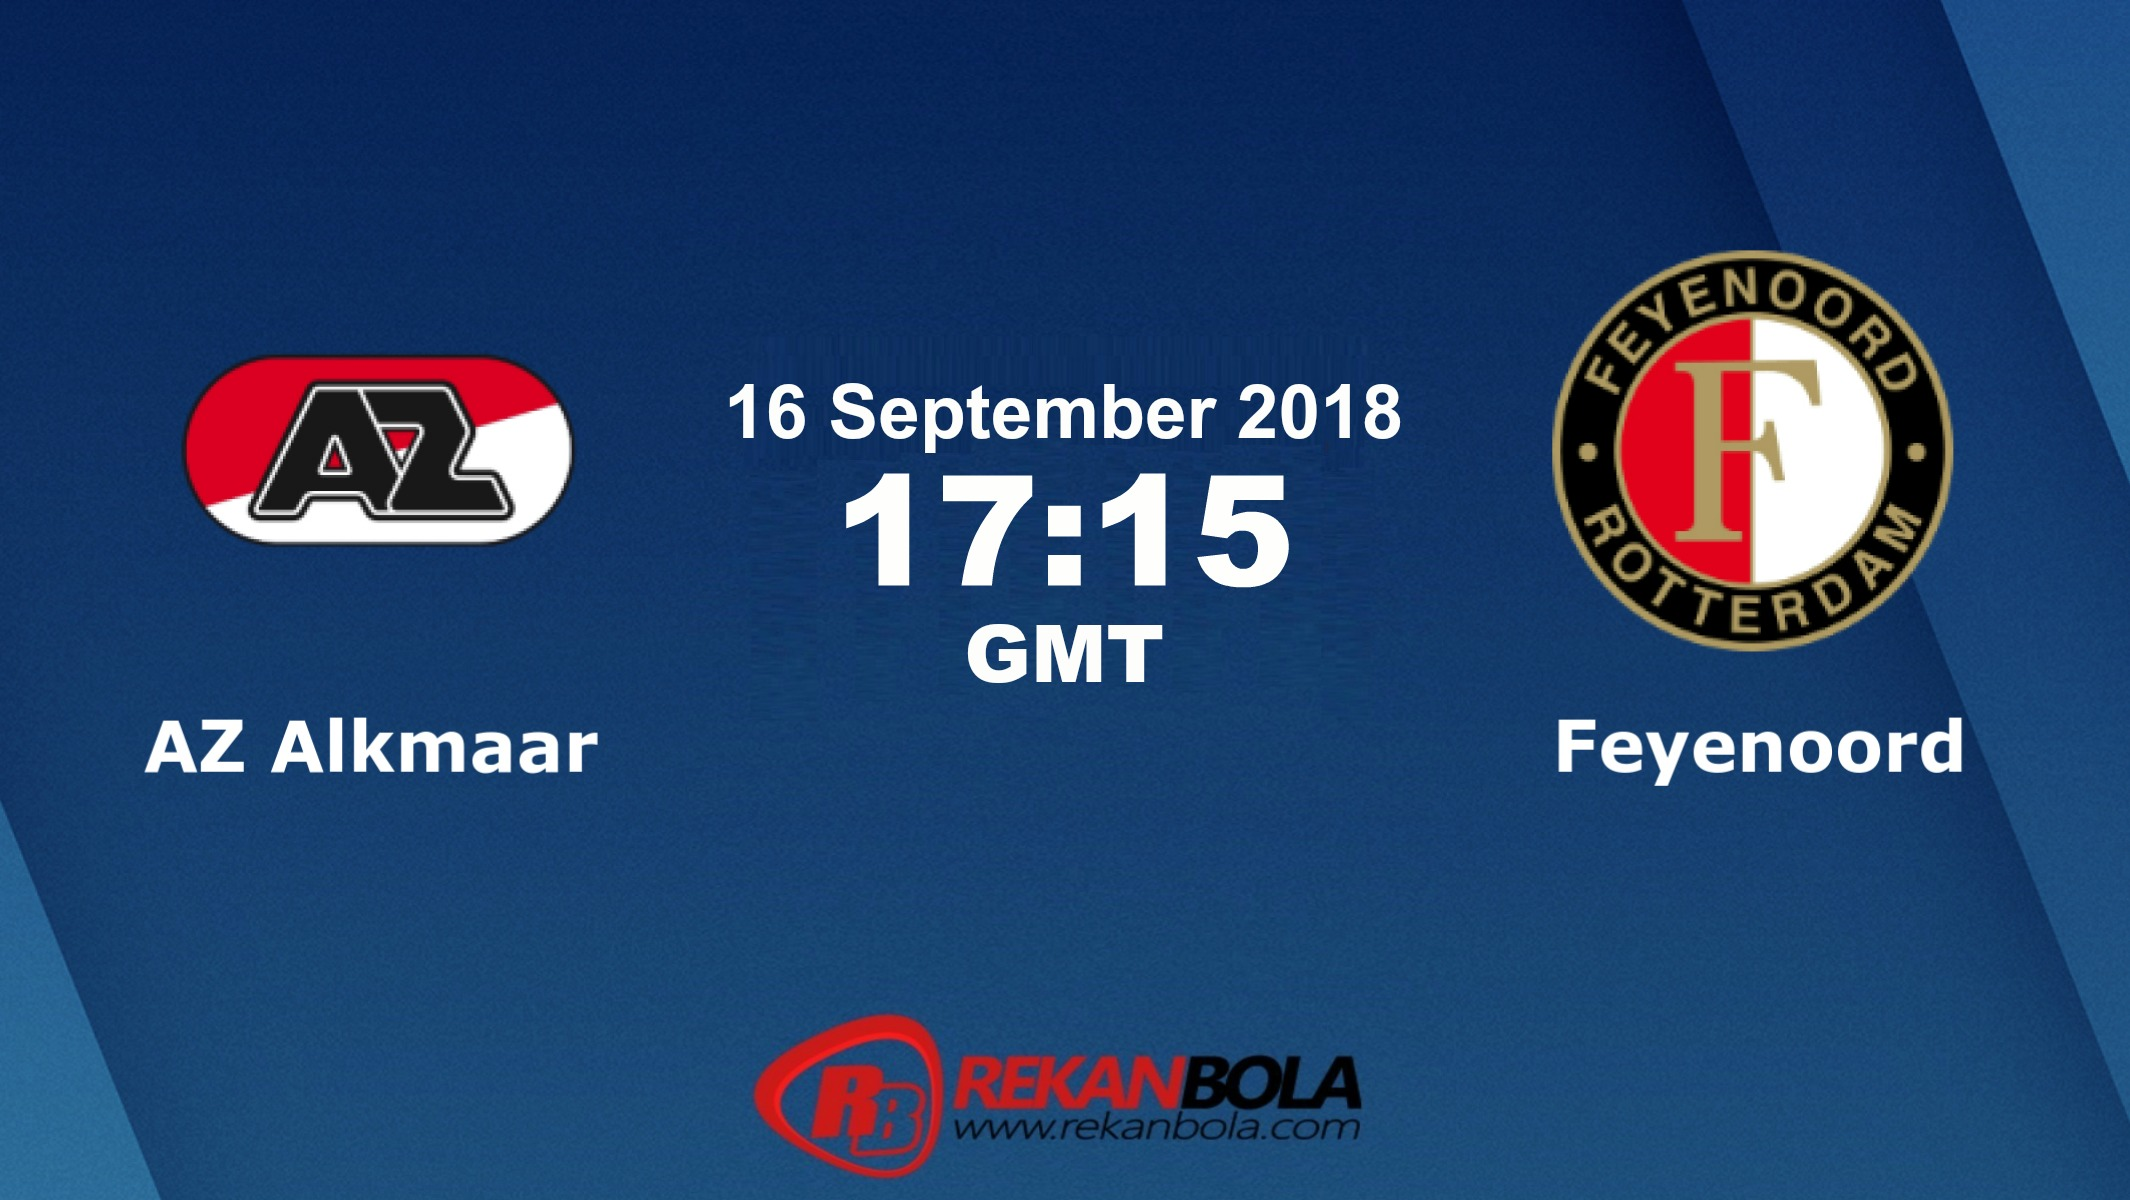 Nonton Siaran Live Streaming AZ Vs Feyenoord 16 September 2018